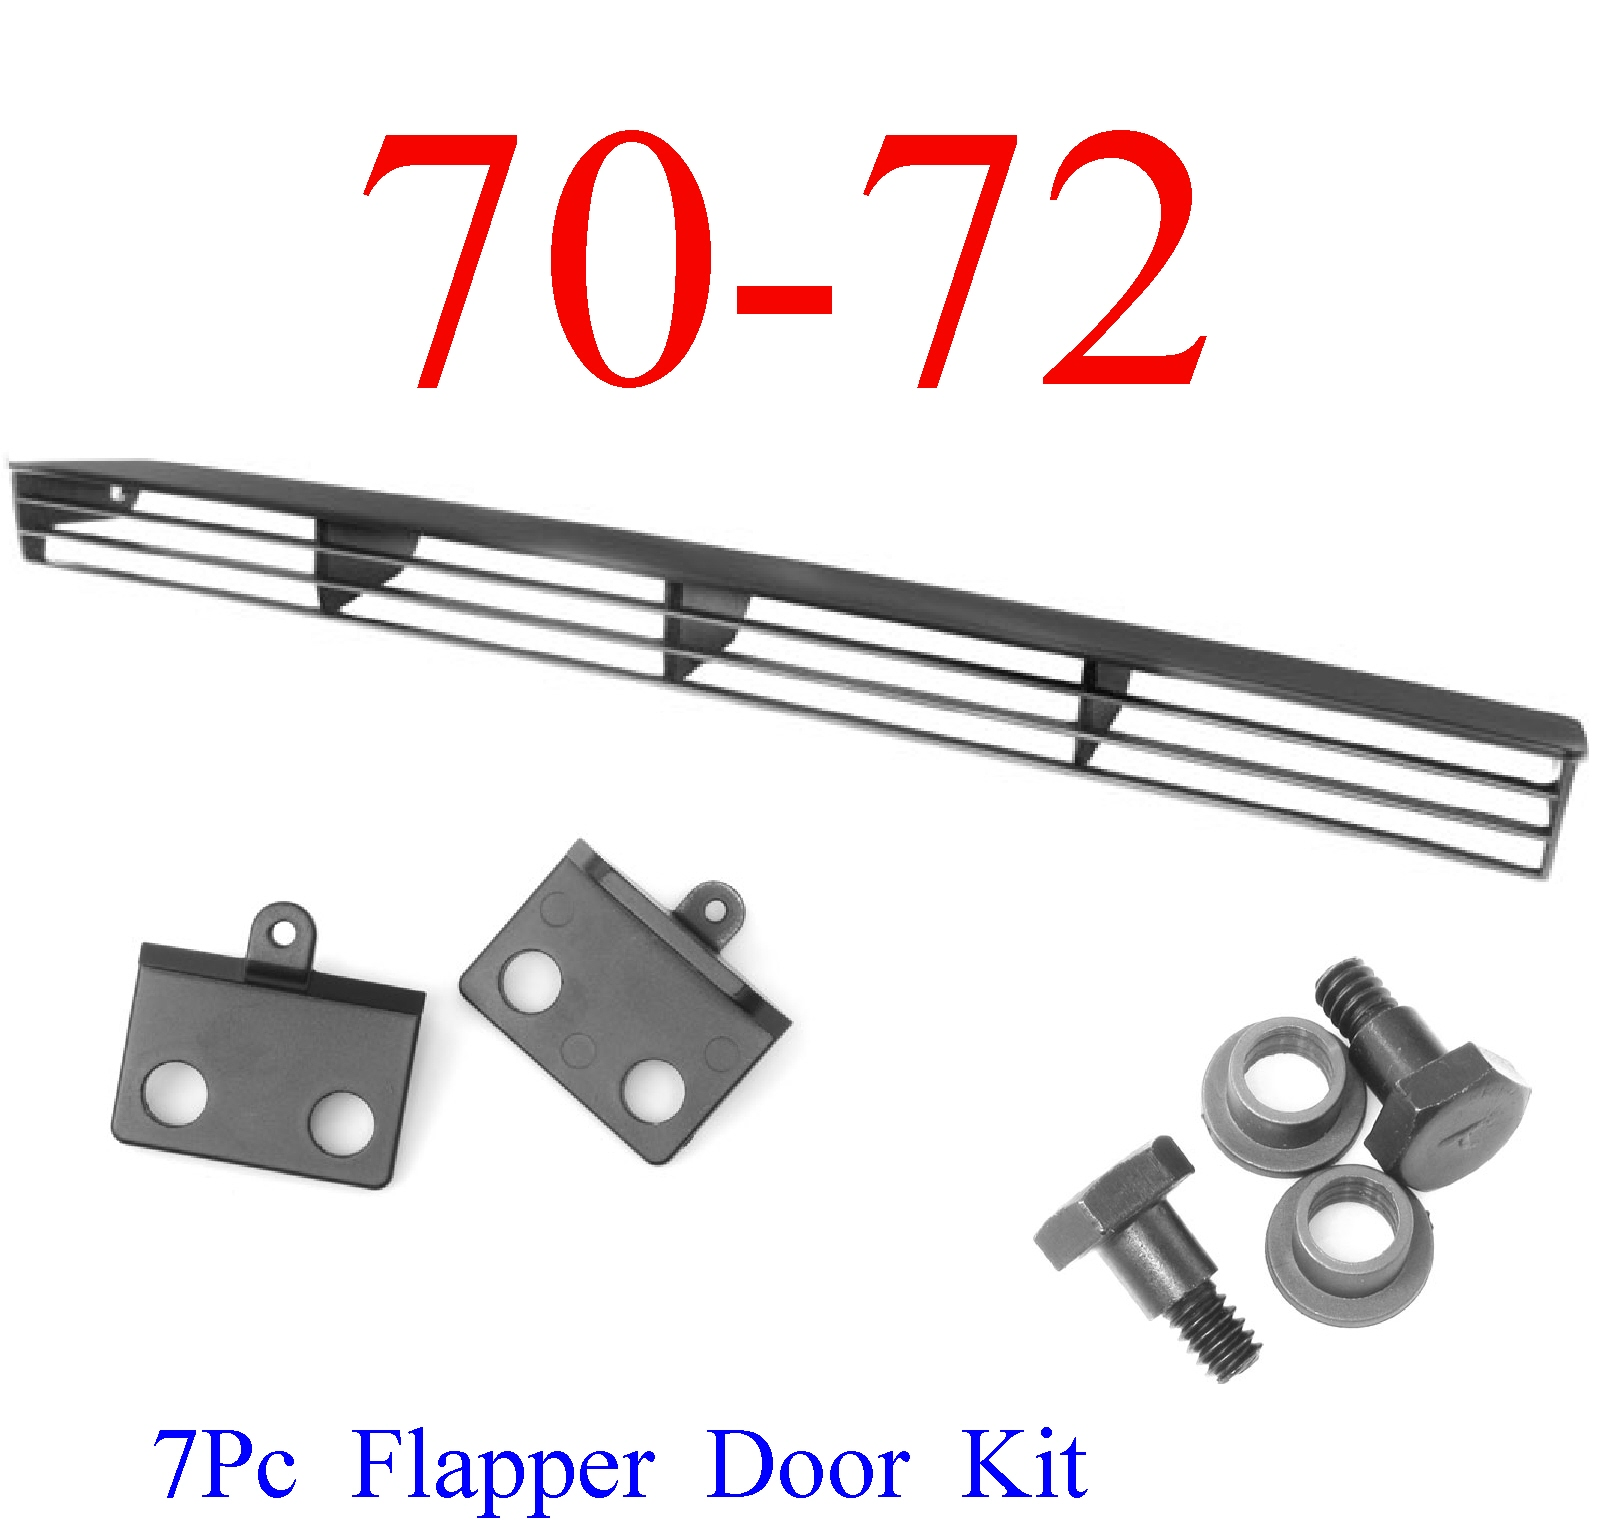 70-72 Chevy Chevelle SS 7Pc Flapper Door & Install Kit